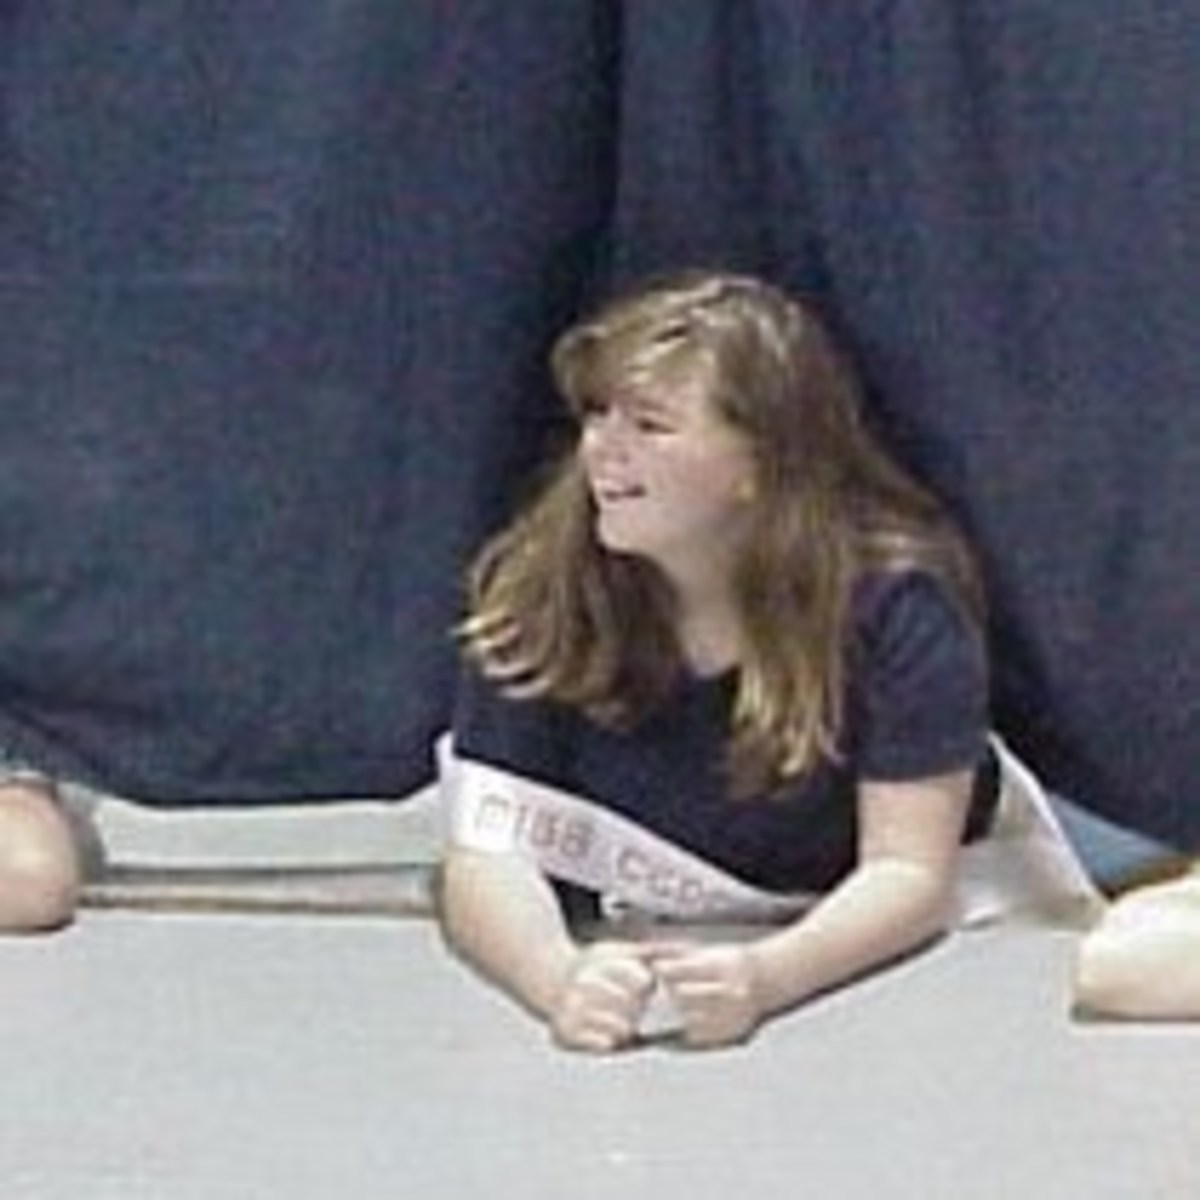 Here's one of Shannon's daughters at a pageant rehearsal.